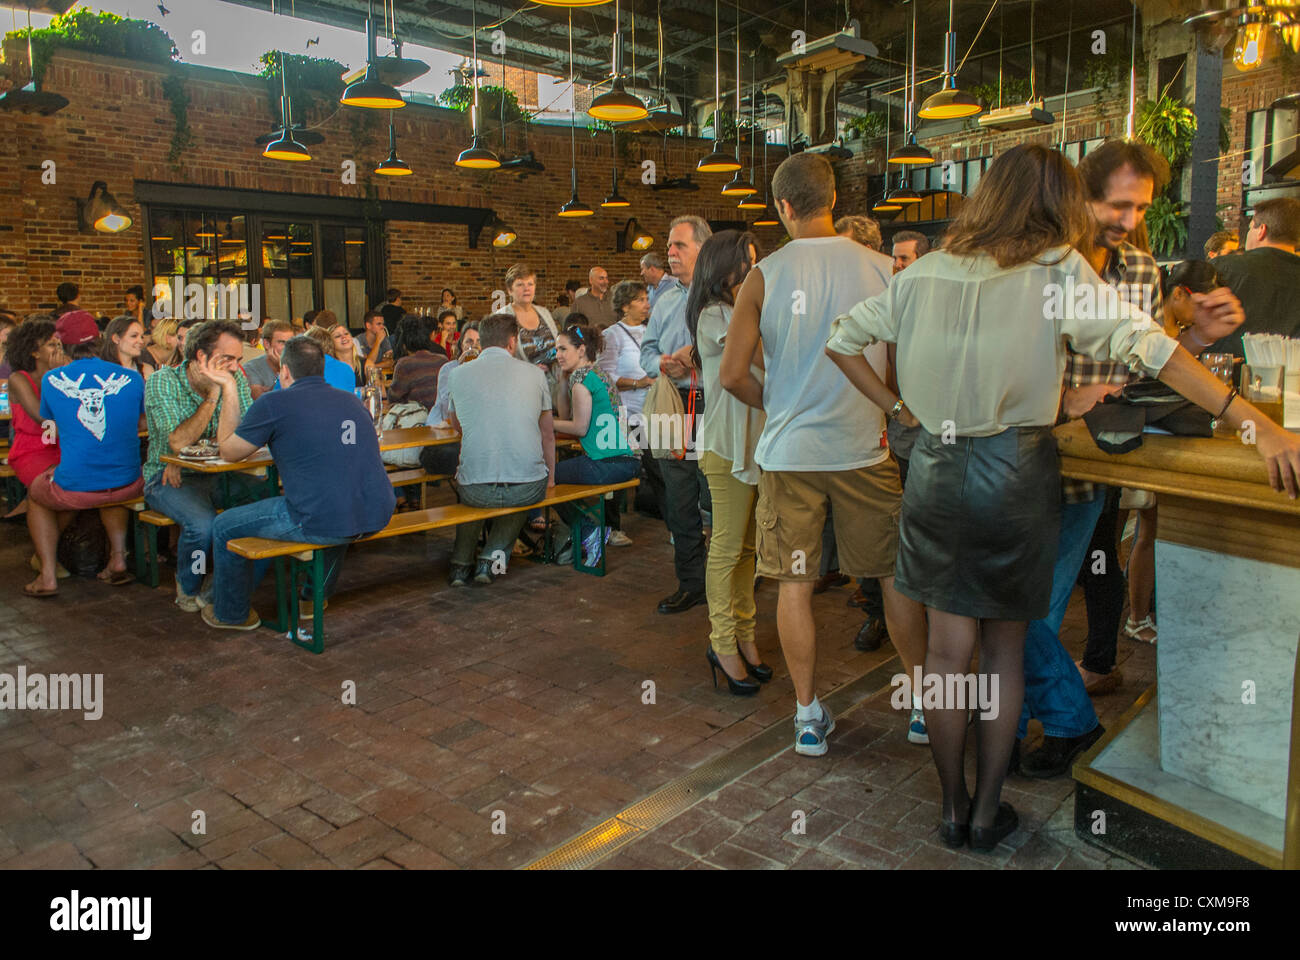 New York City, NY, USA, People in the Beer Garden \